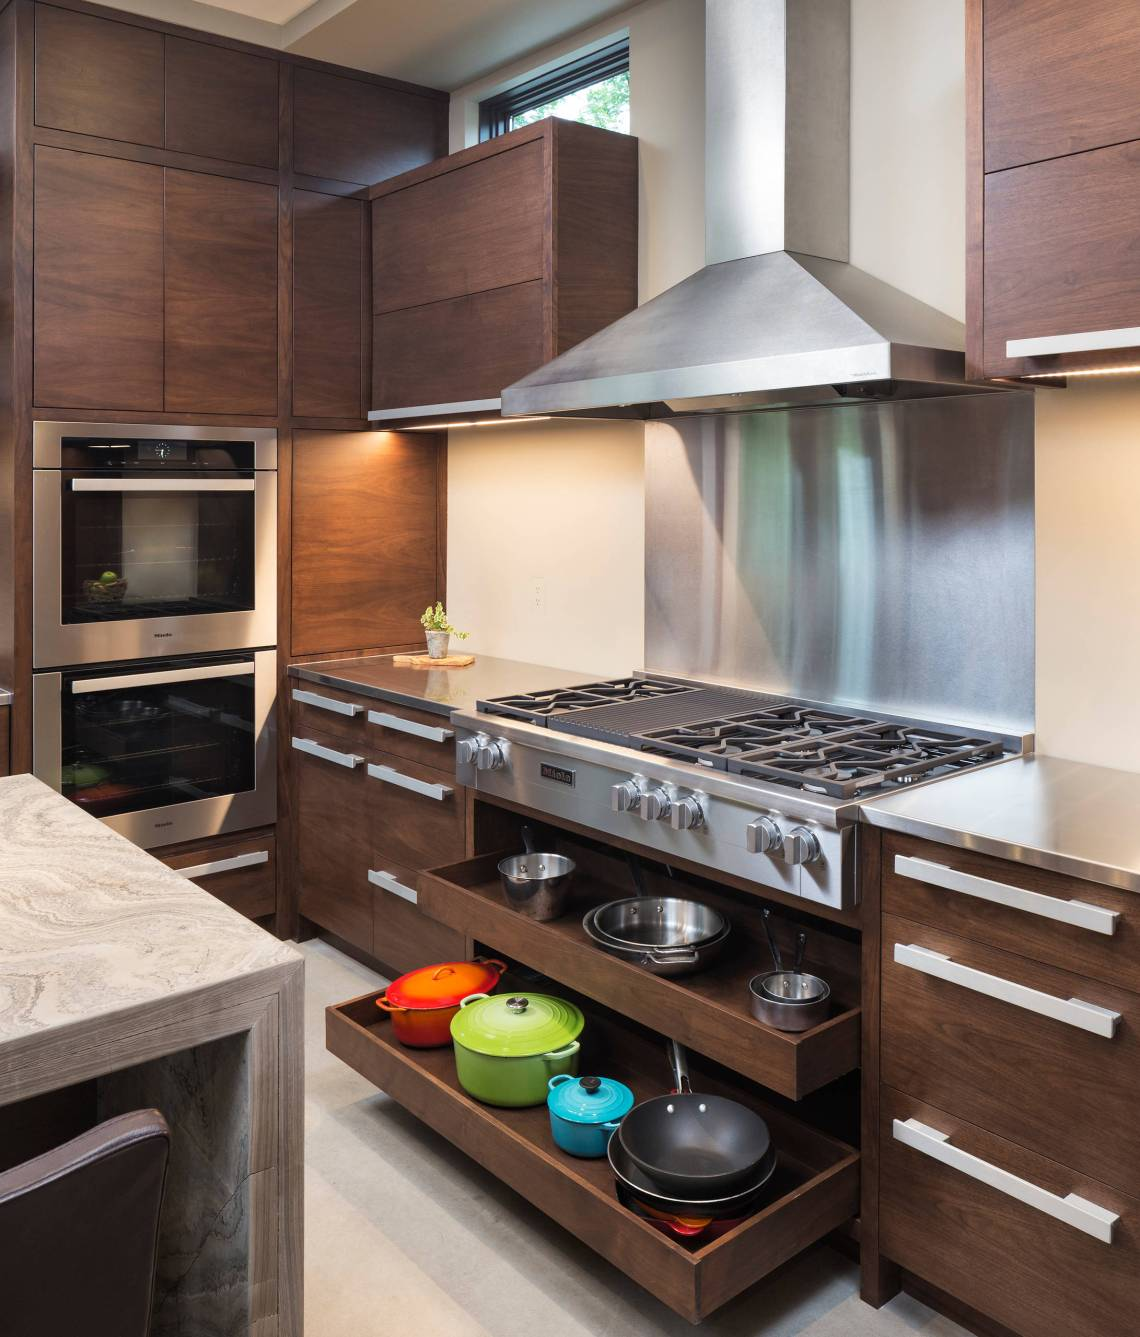 75 Beautiful Small Kitchen Pictures Ideas August 2021 Houzz